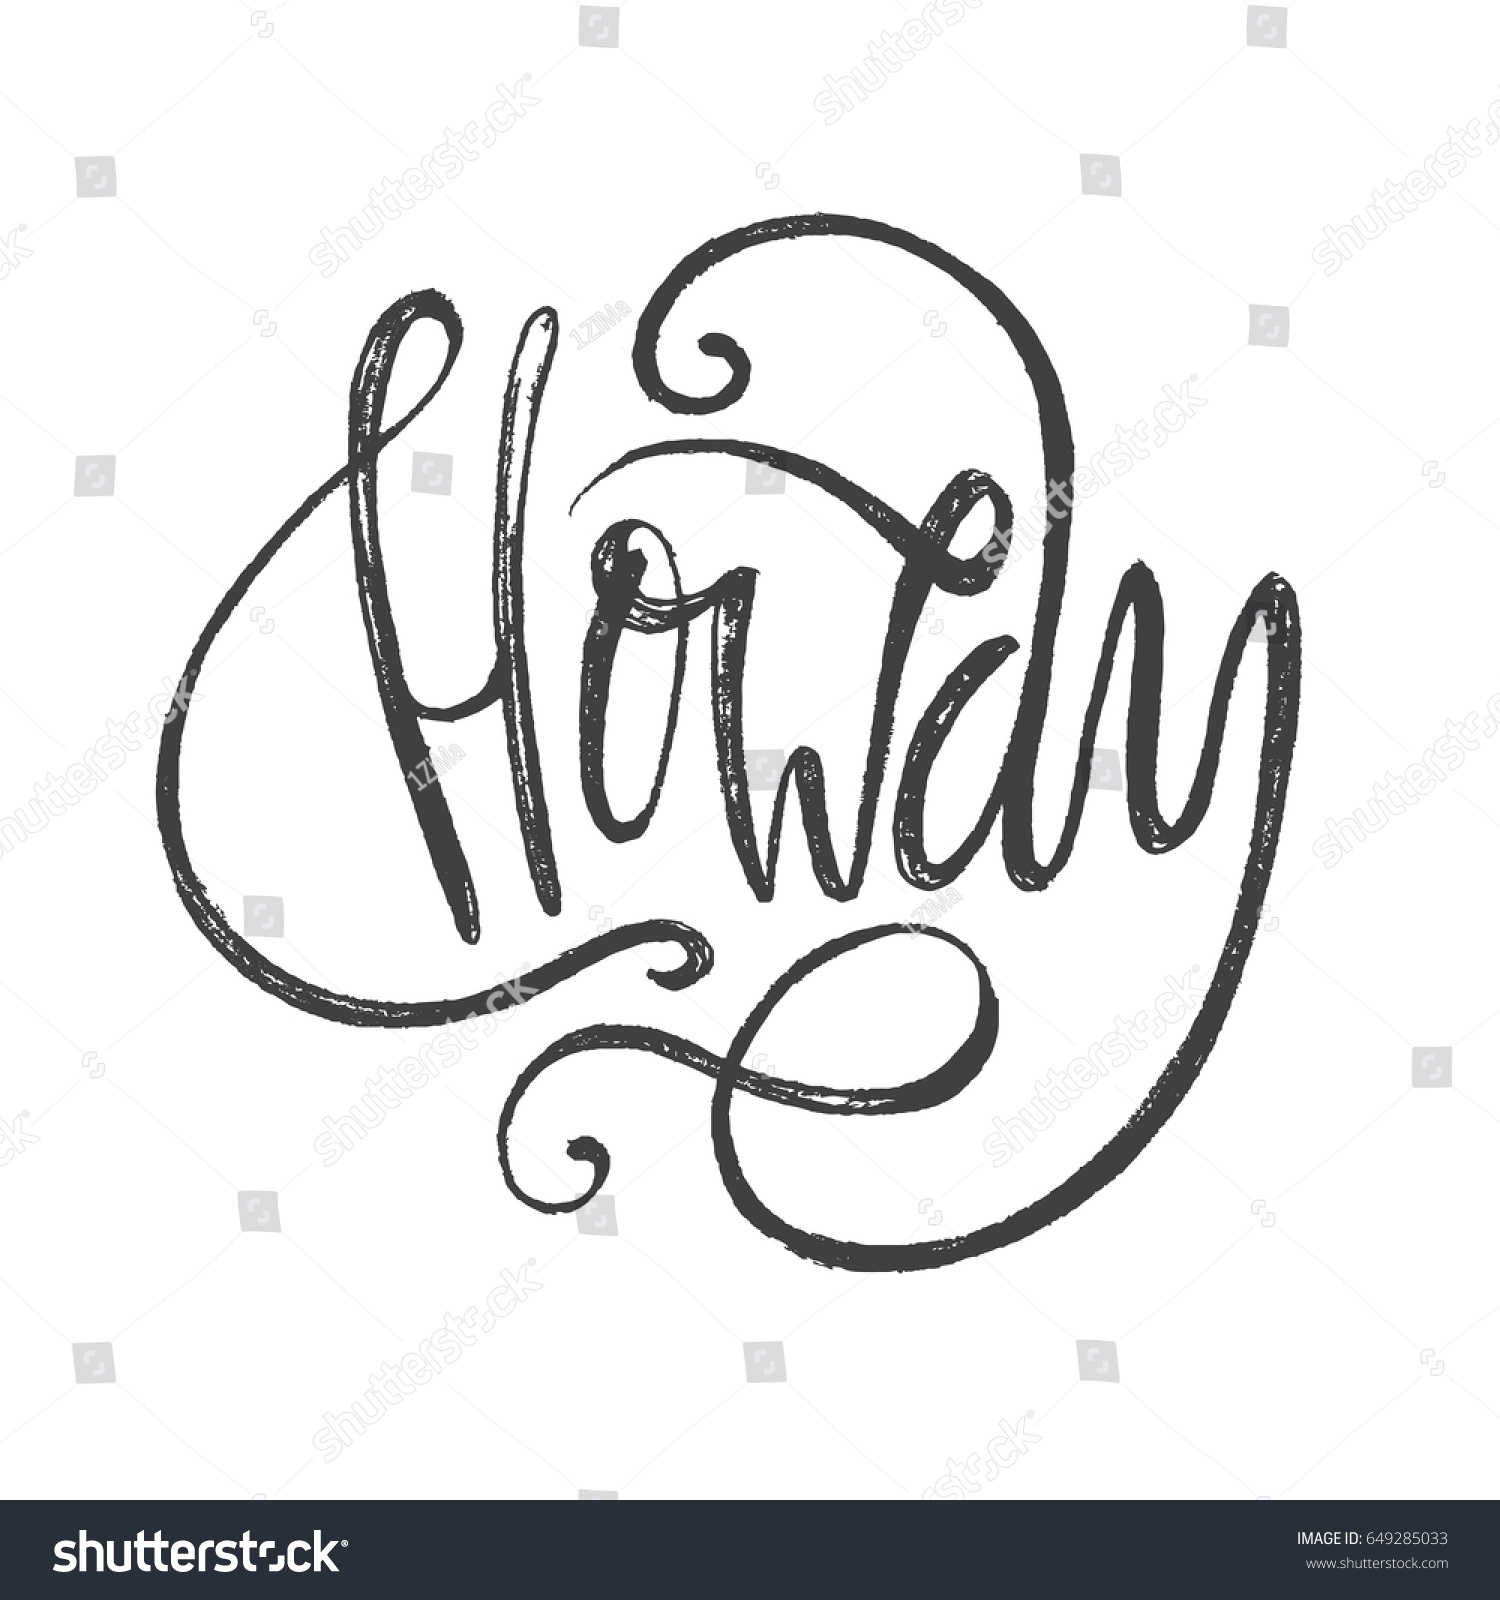 Howdy Slang Lettering Greeting Words Hand Stock Vector Royalty Free